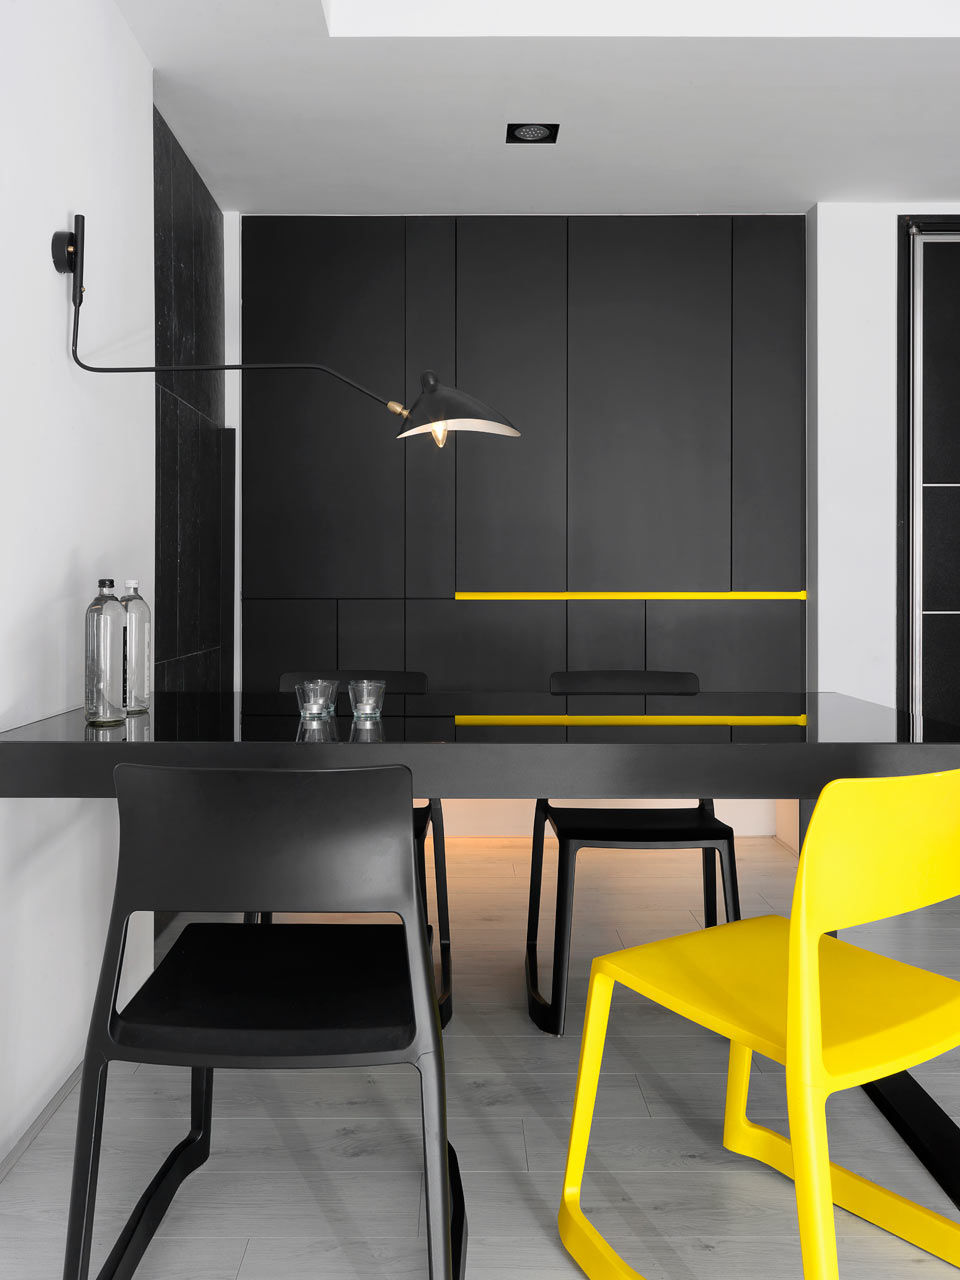 taichung h residence9 Modern Apartment with Bright Yellow Accents